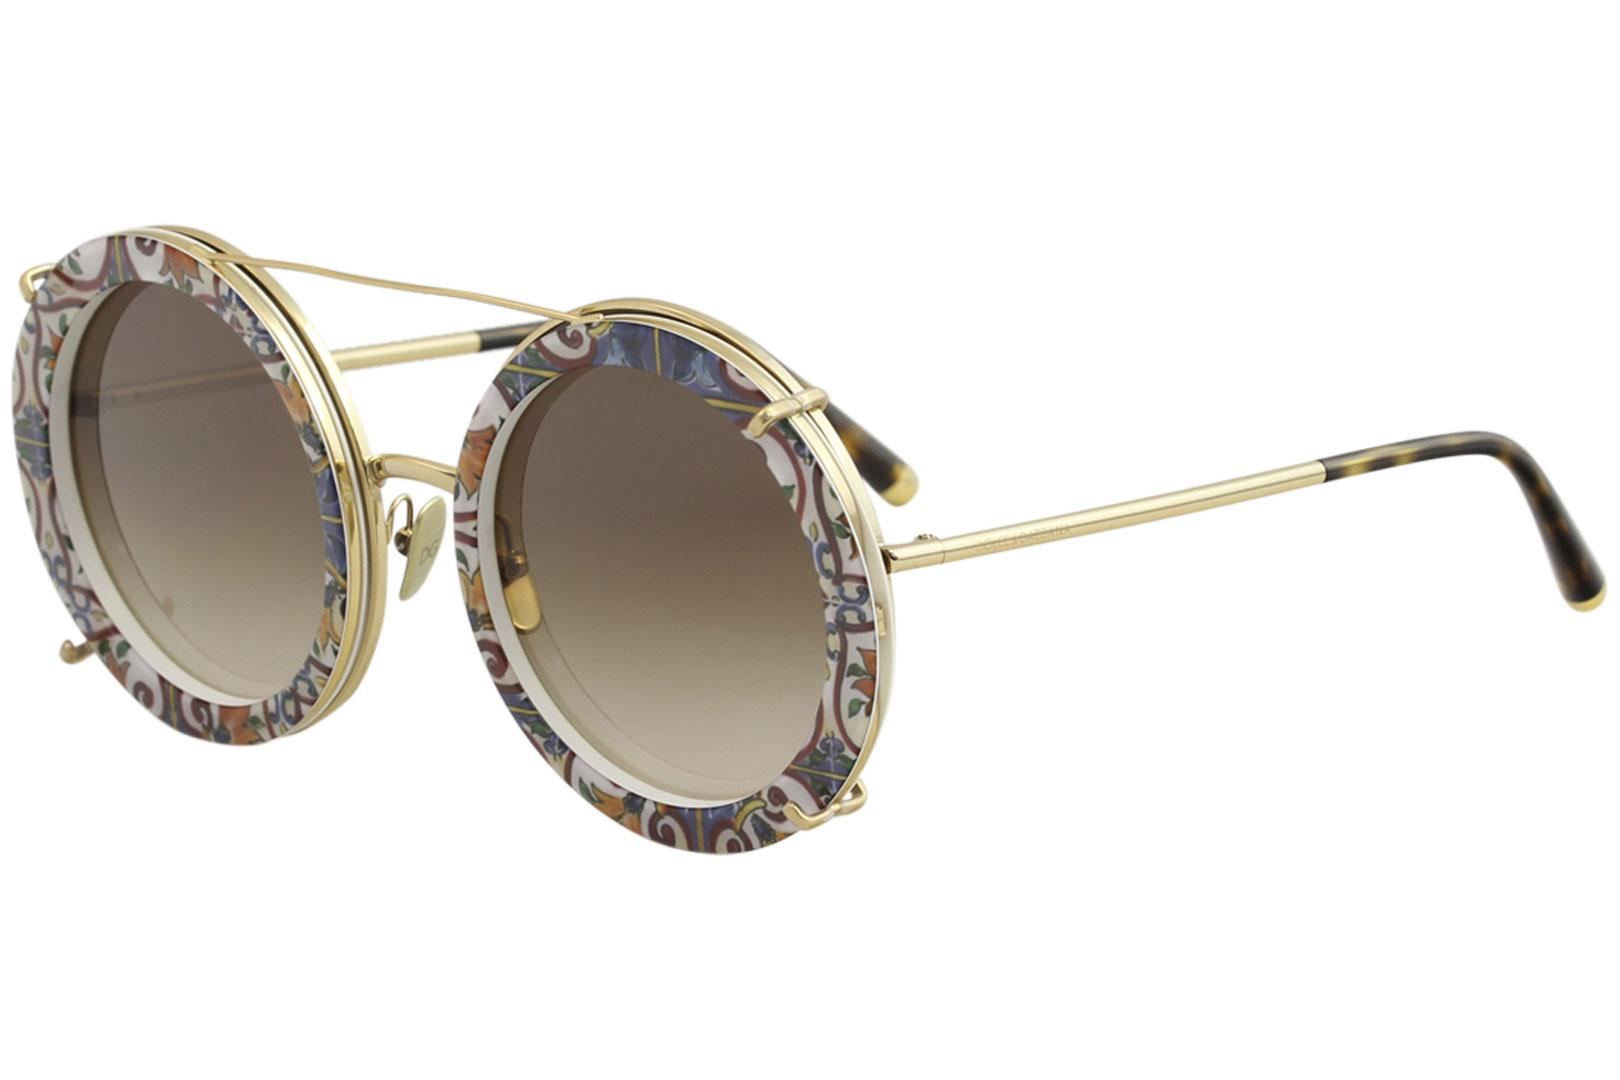 fb843c1ea4 Dolce   Gabbana Women s D G DG2198 DG 2198 Fashion Round Sunglasses W  Clip  On